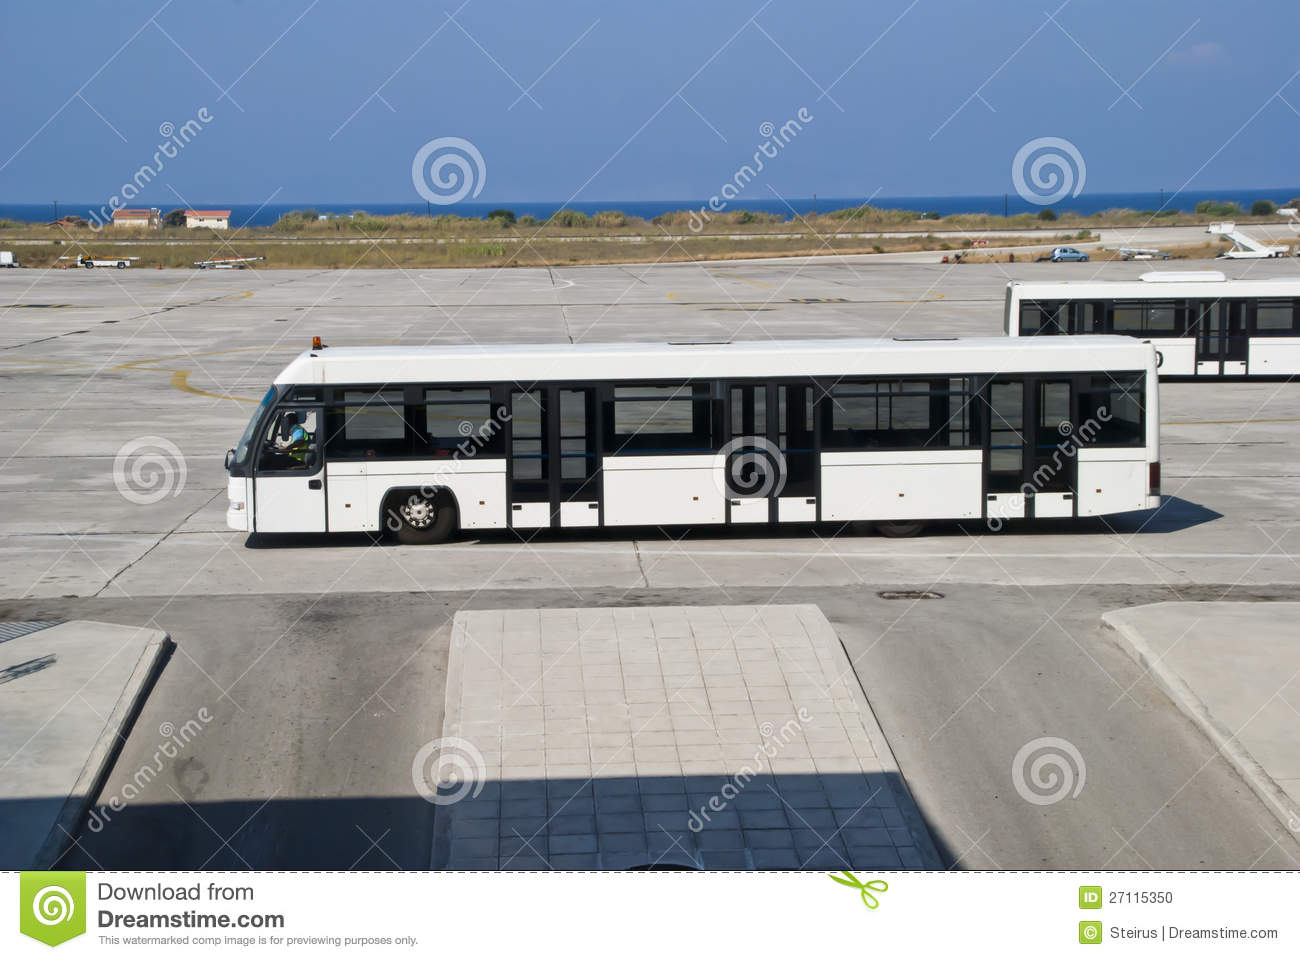 passenger bus at the airport stock photo   image 27115350